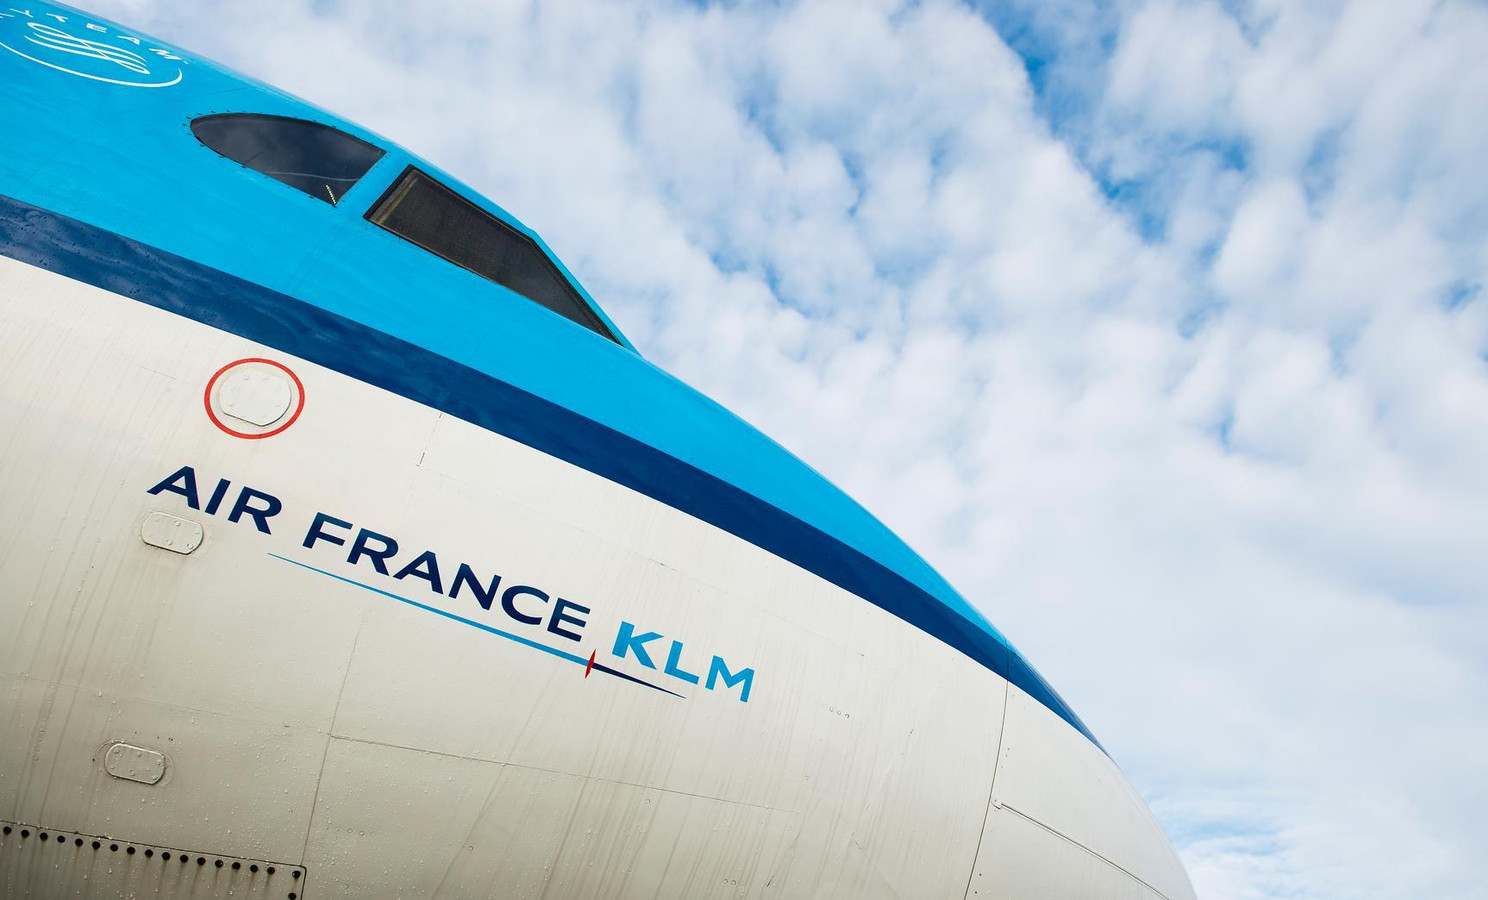 High quality images for air france logo www.919wall.ml